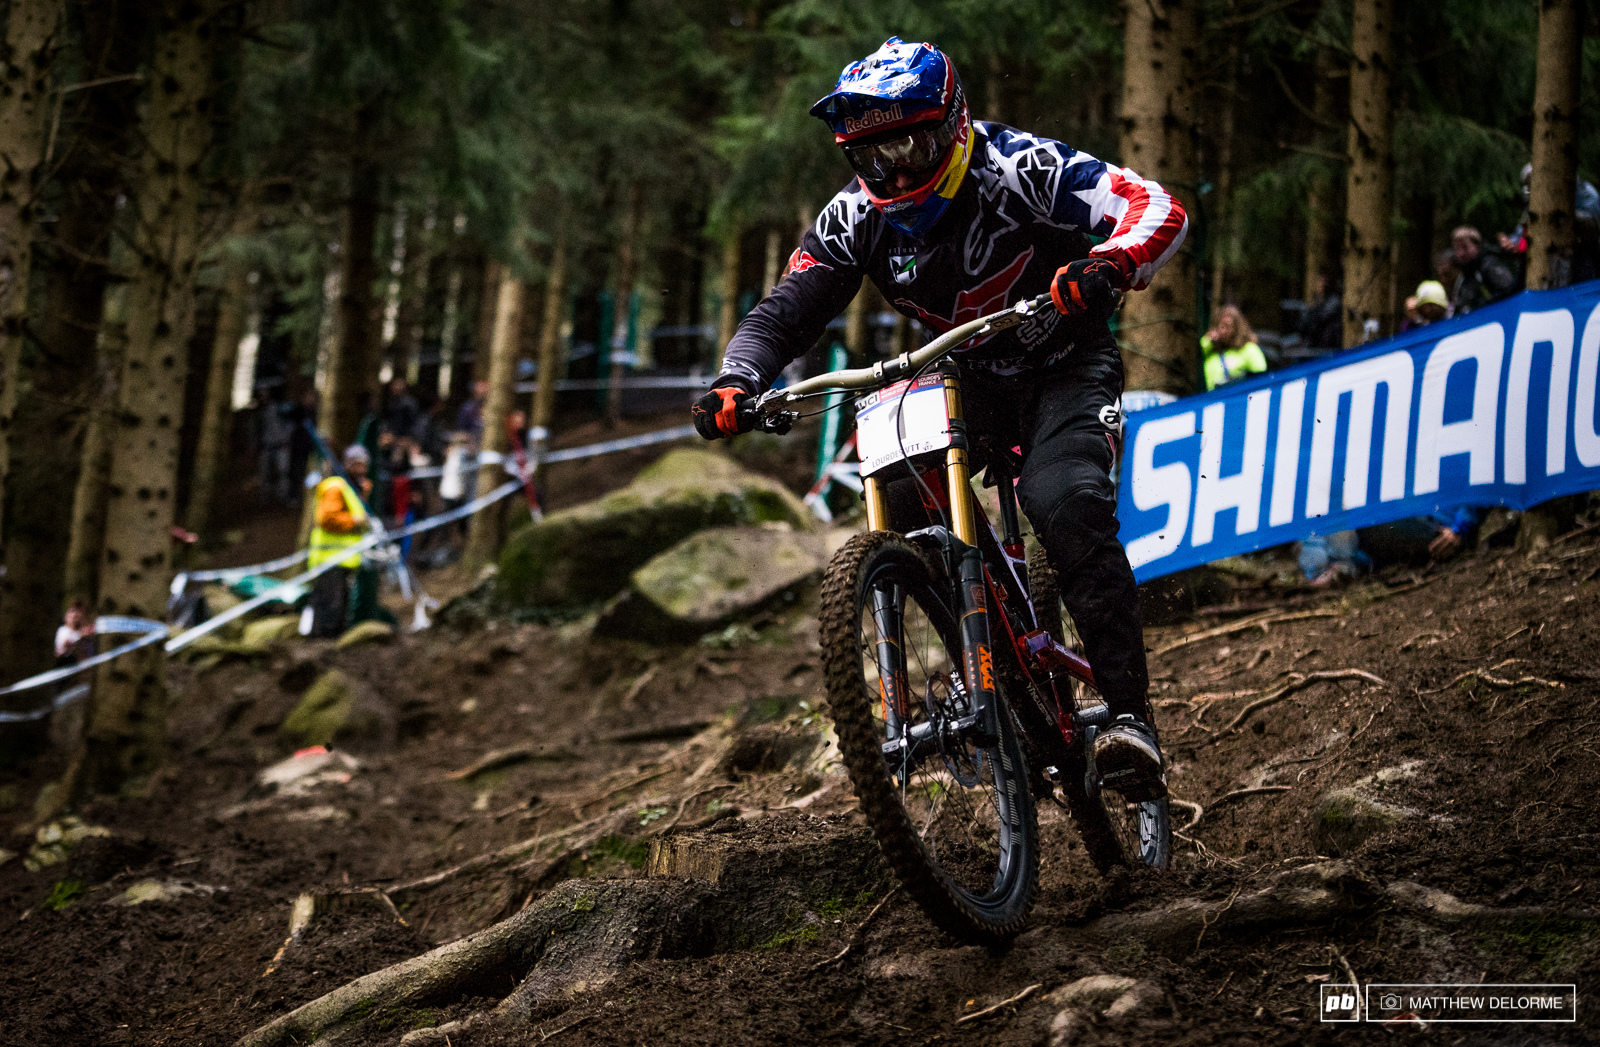 Aaron Gwin didn t have his best day out today. He crashed in qualifying finishing tenth. Can Gwinny put down a winning run tomorrow or is the throne now up for grabs by Loic